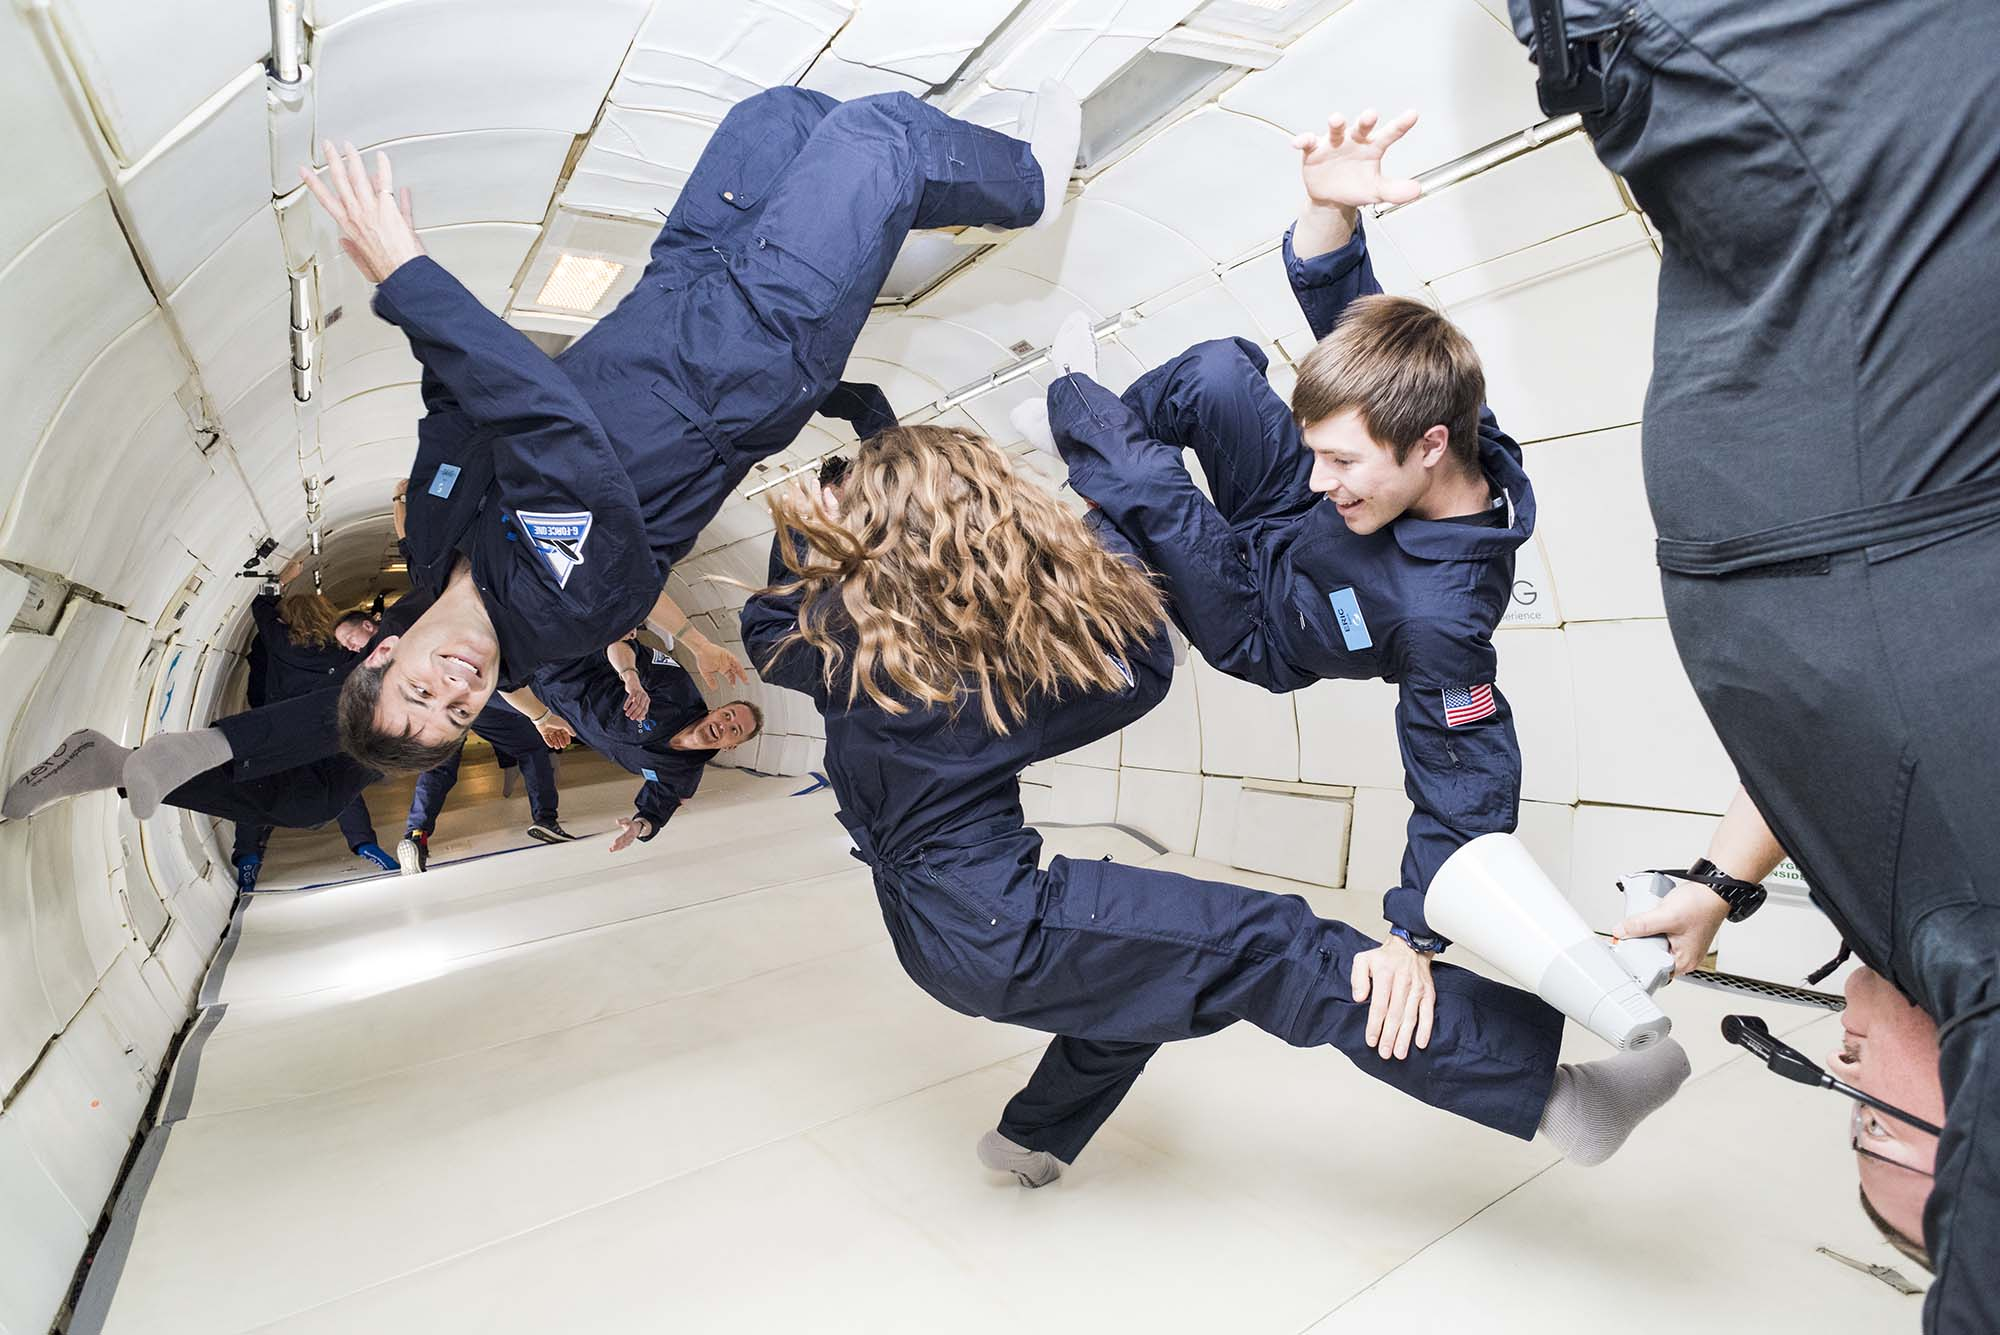 Bob Croslin florida photographer Zero gravity flights for Smithsonian magazine